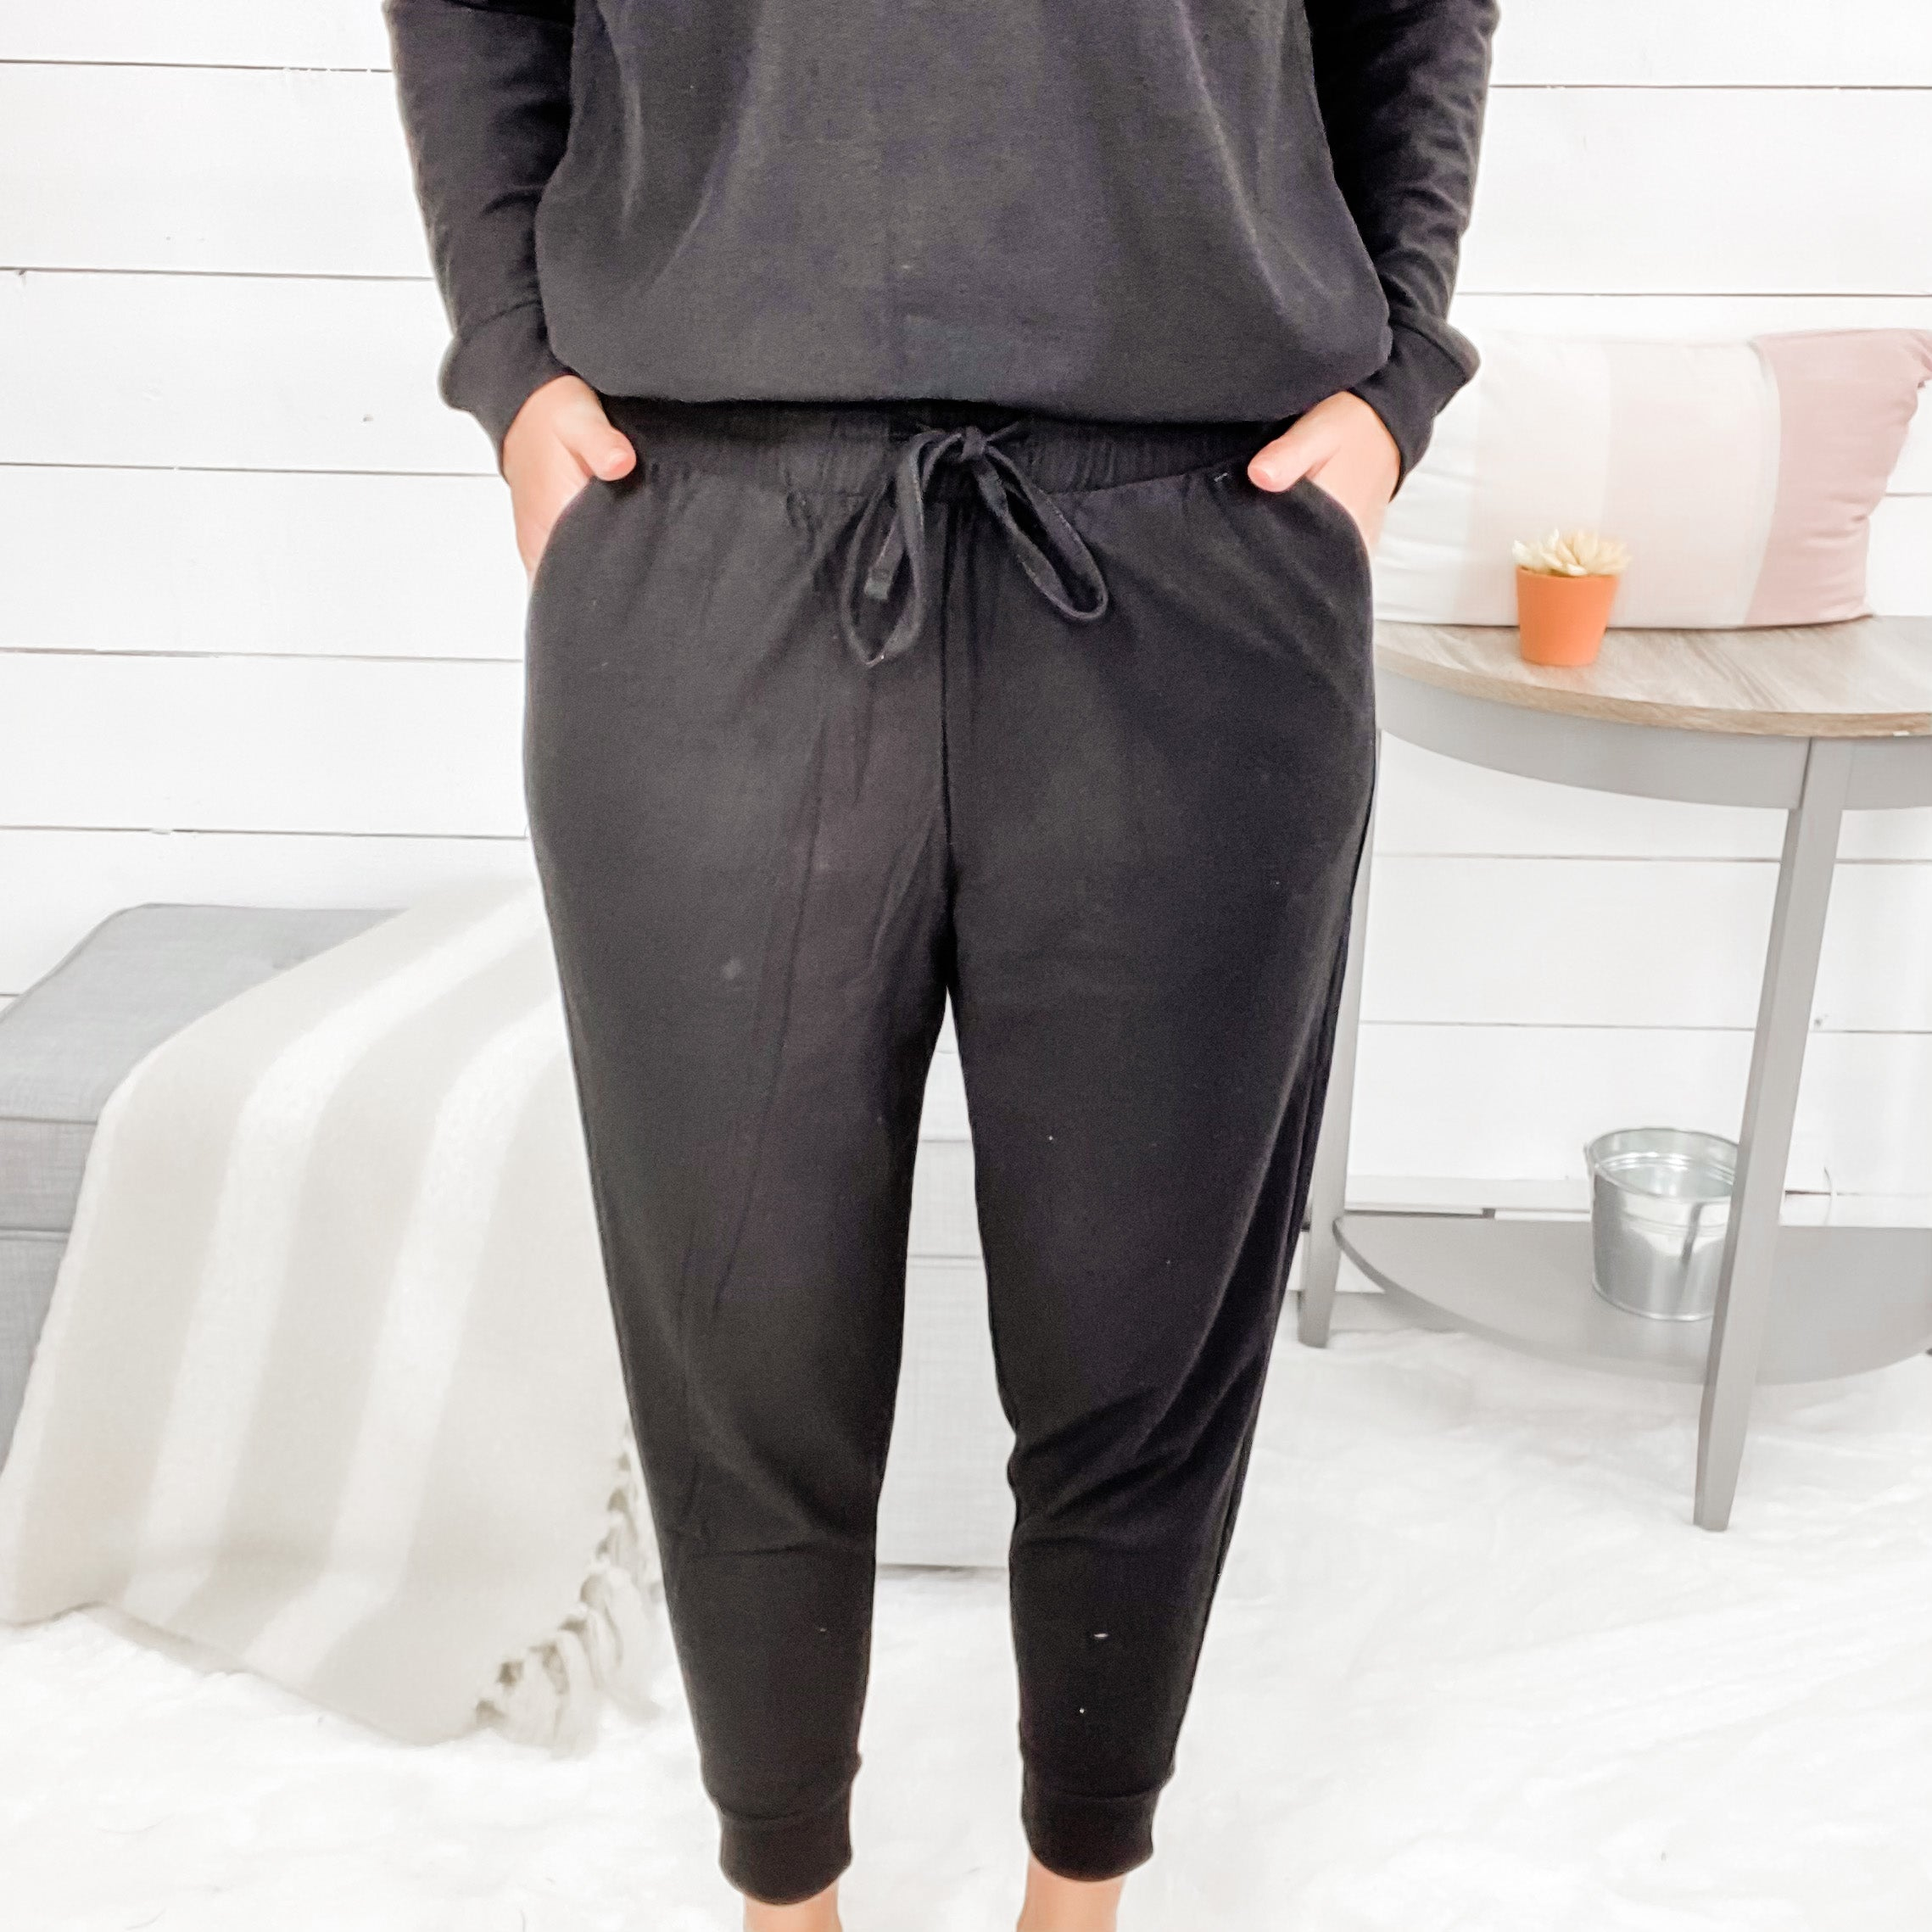 Zenana French Terry Joggers w/ Elastic Waistband and Front Pockets